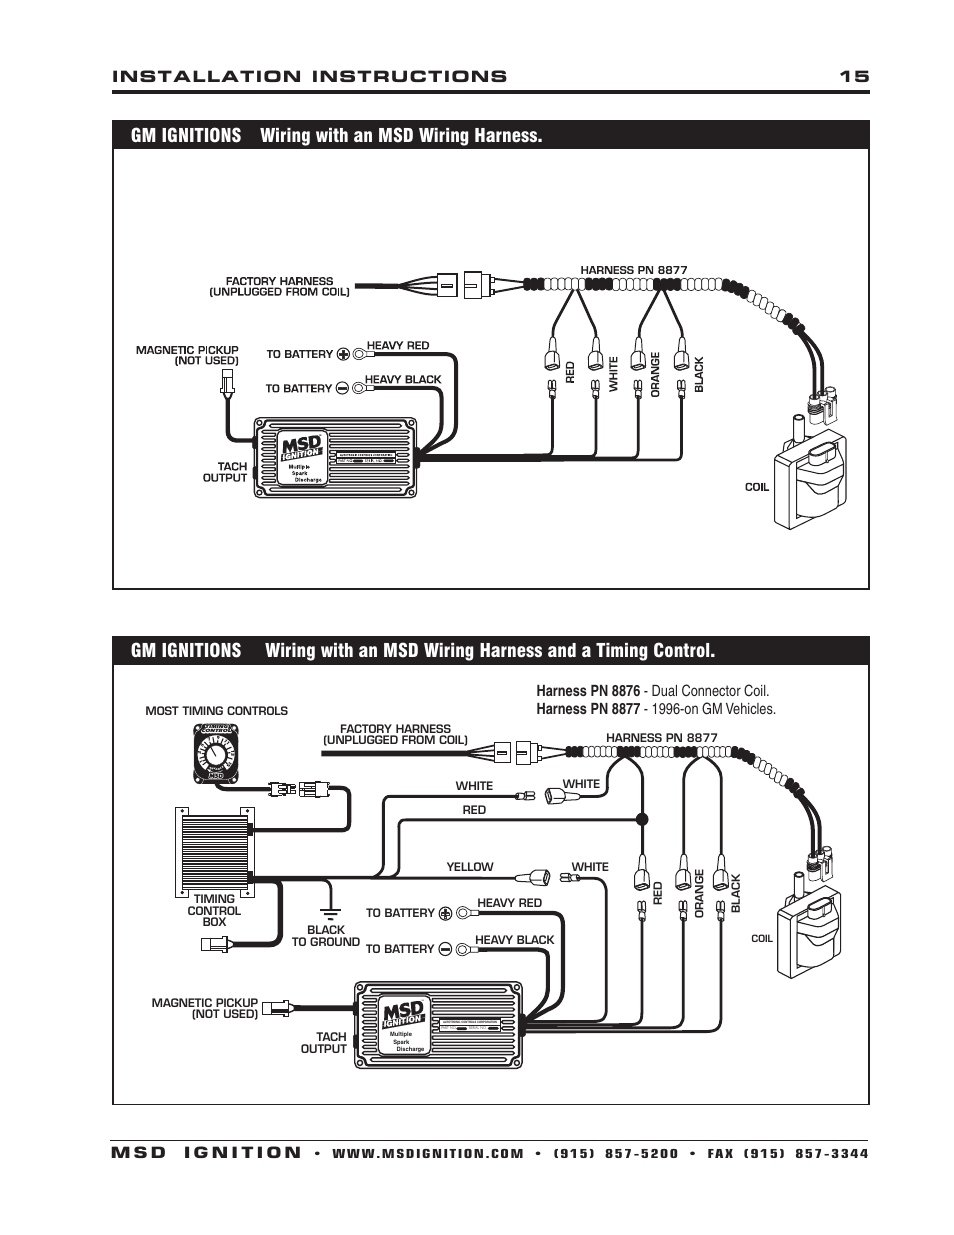 Msd Wiring Harness Library Diagram Pn 6010 Gm Ignitions With An 6430 6aln Ignition Control Installation User